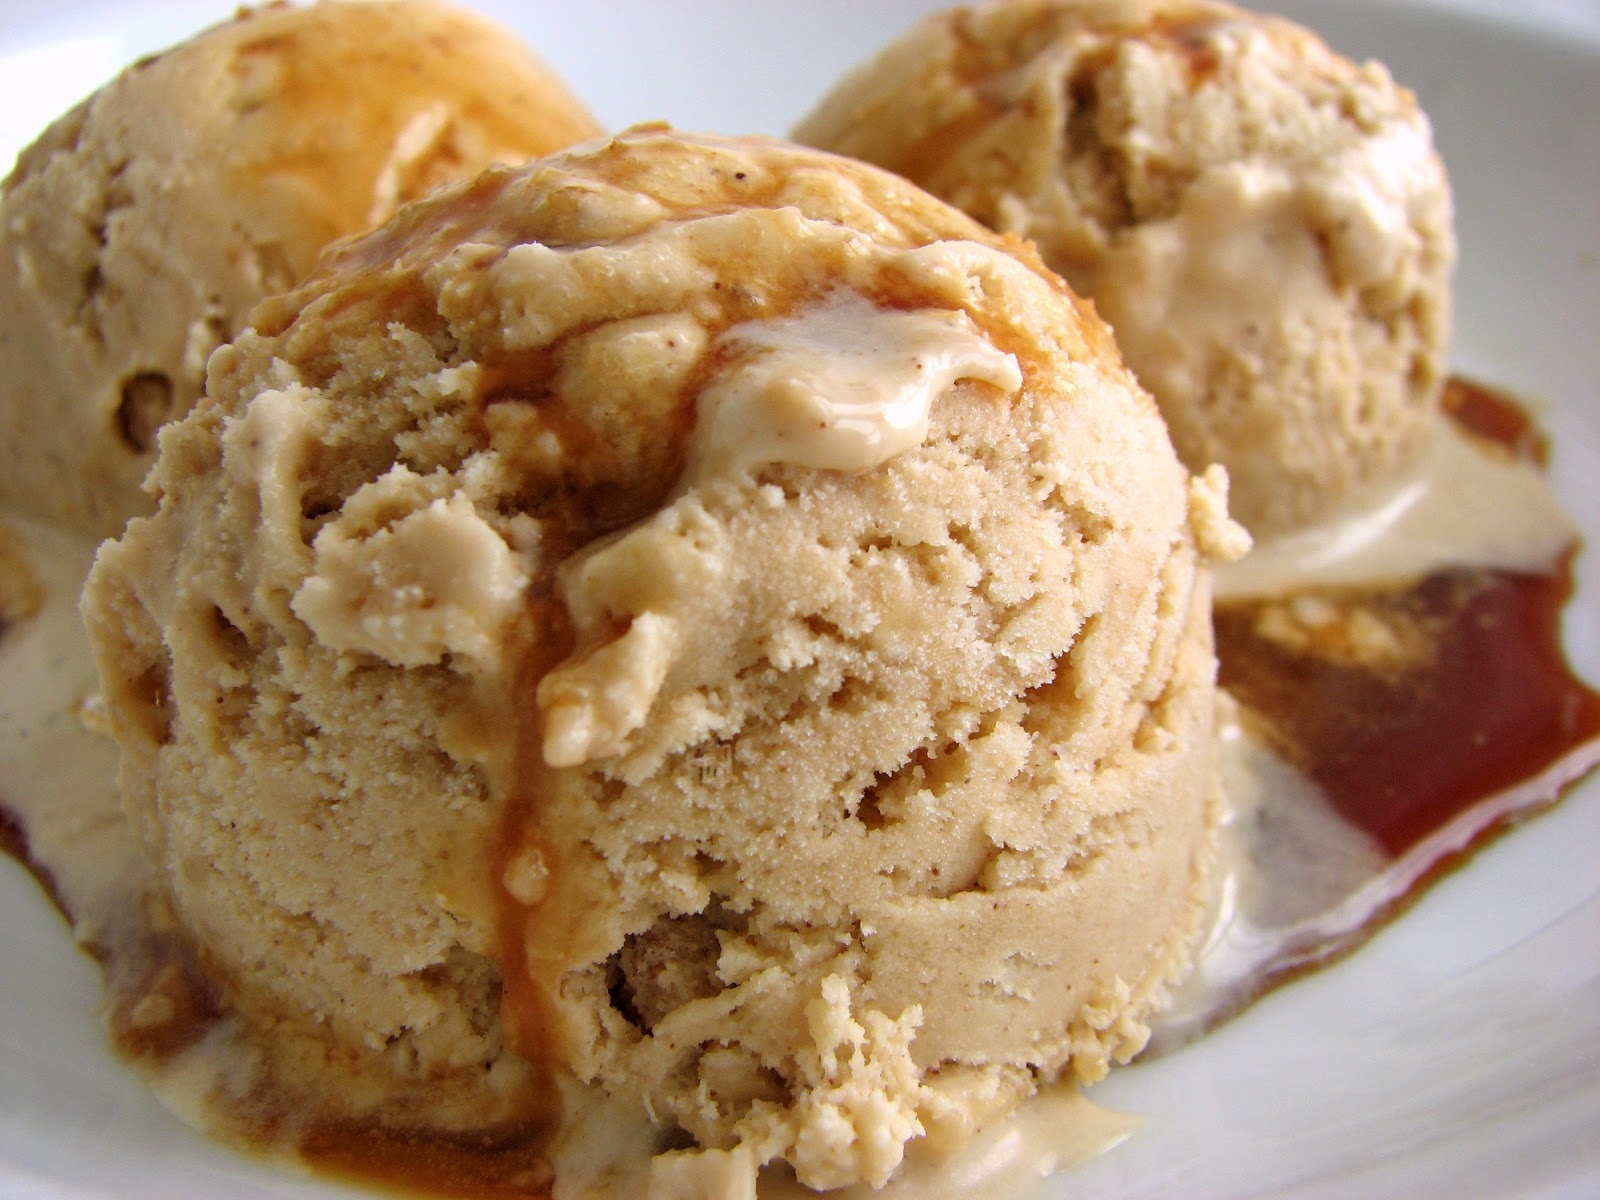 pastry studio: Oatmeal Ice Cream